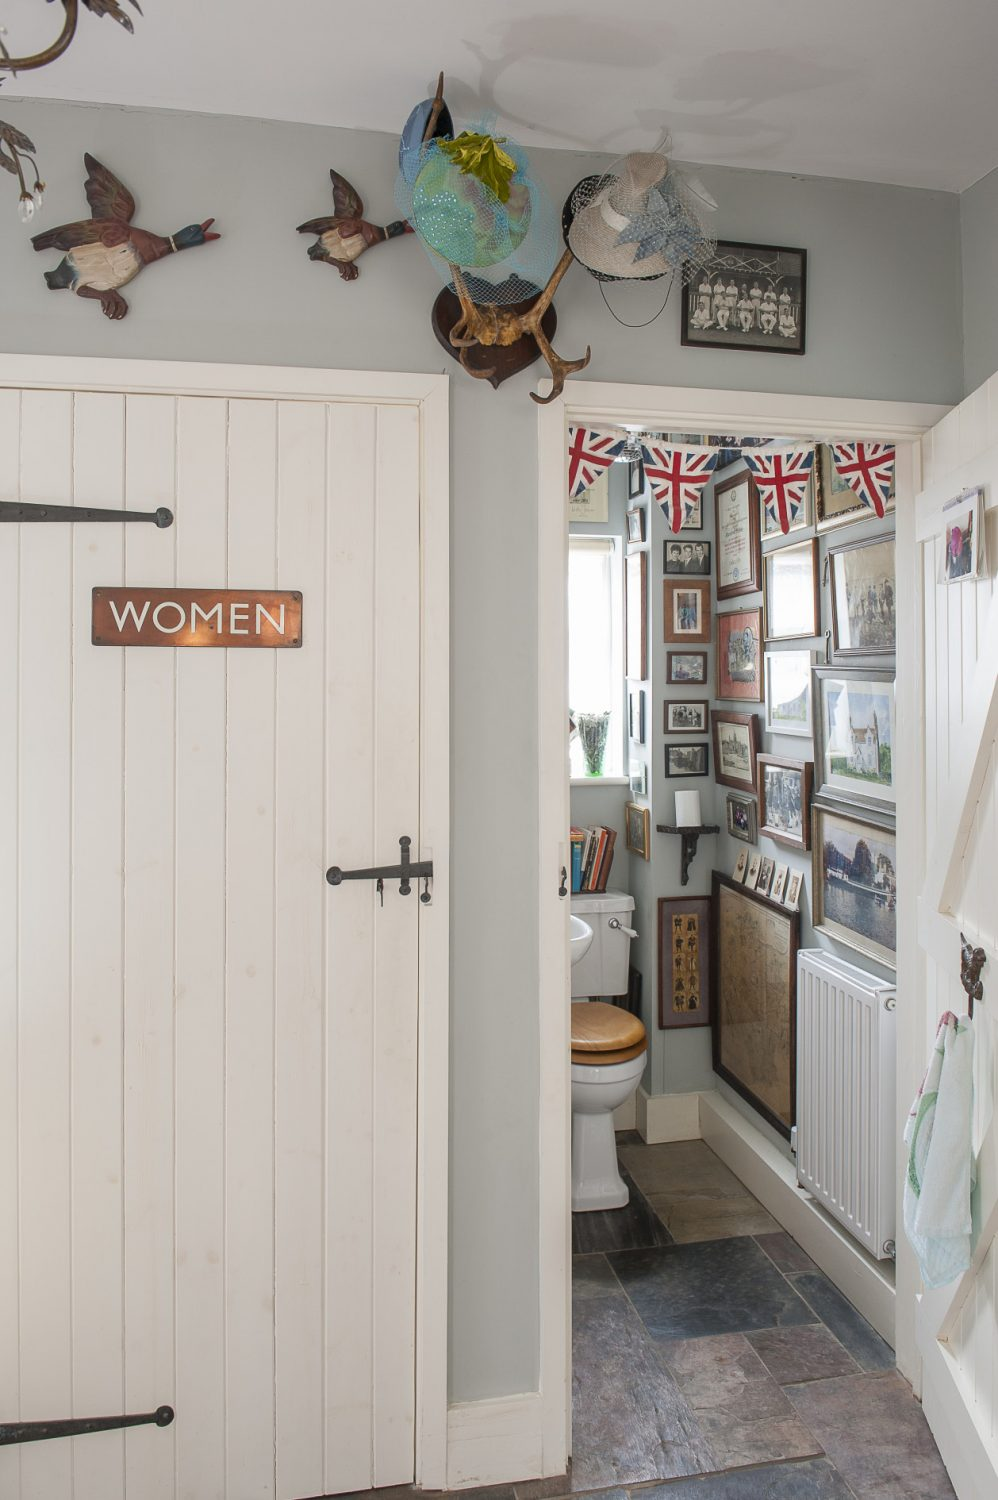 The walls of the downstairs loo are covered with framed photographs, prints, cards and letters with personal meaning